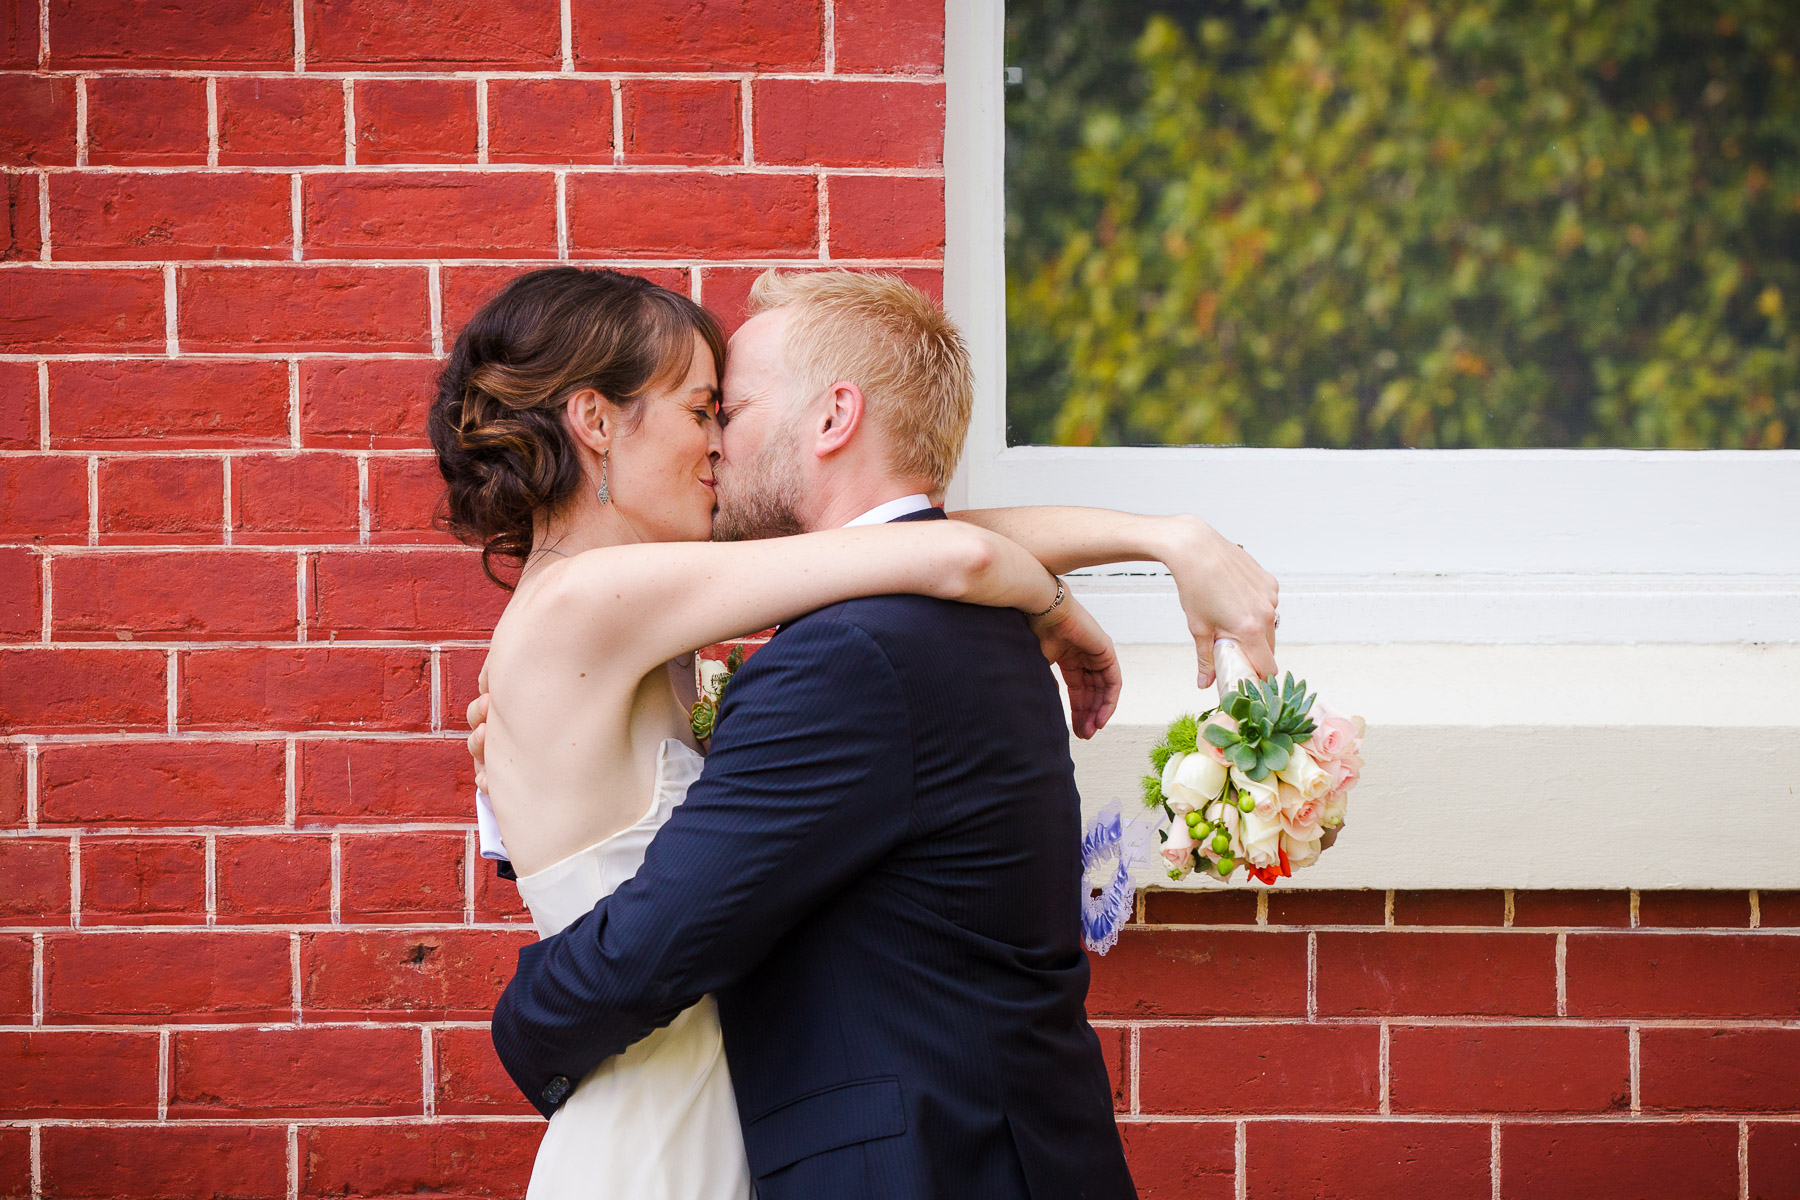 Justin_and_Jim_Best_Of_Wedding_Photography-20.jpg